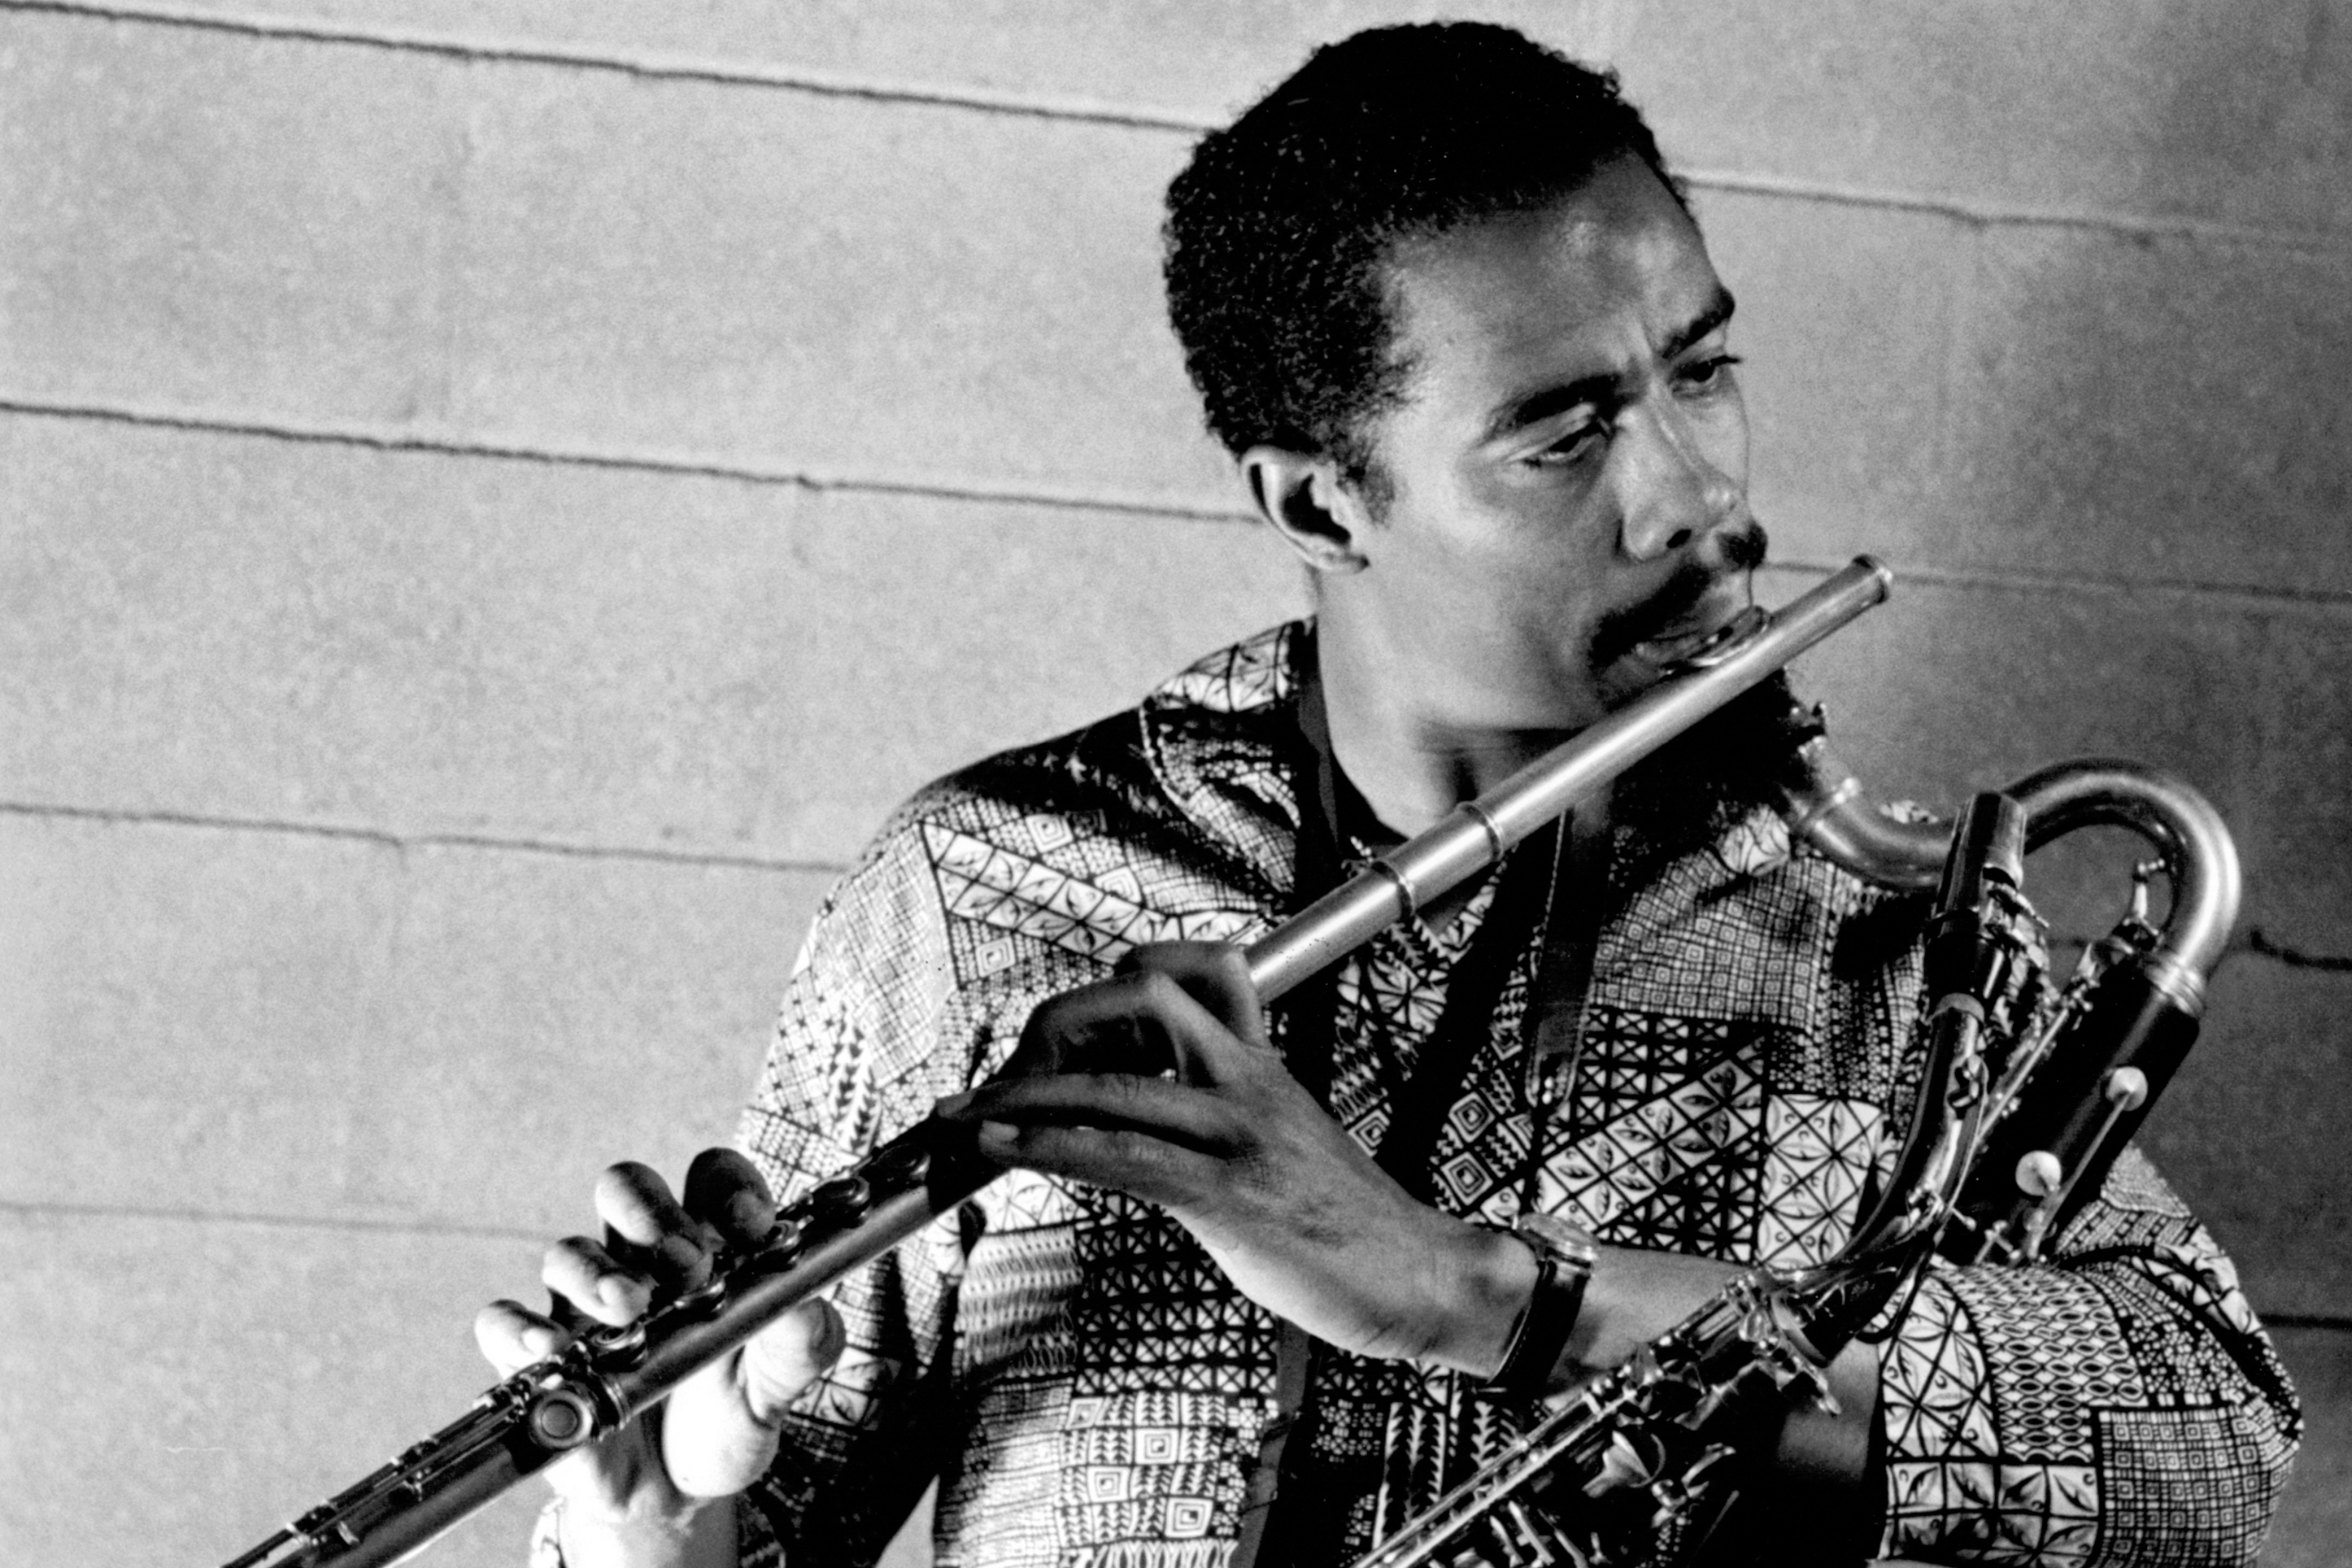 Review: 'Musical Prophet' Memorializes Eric Dolphy's Radical Jazz Genius